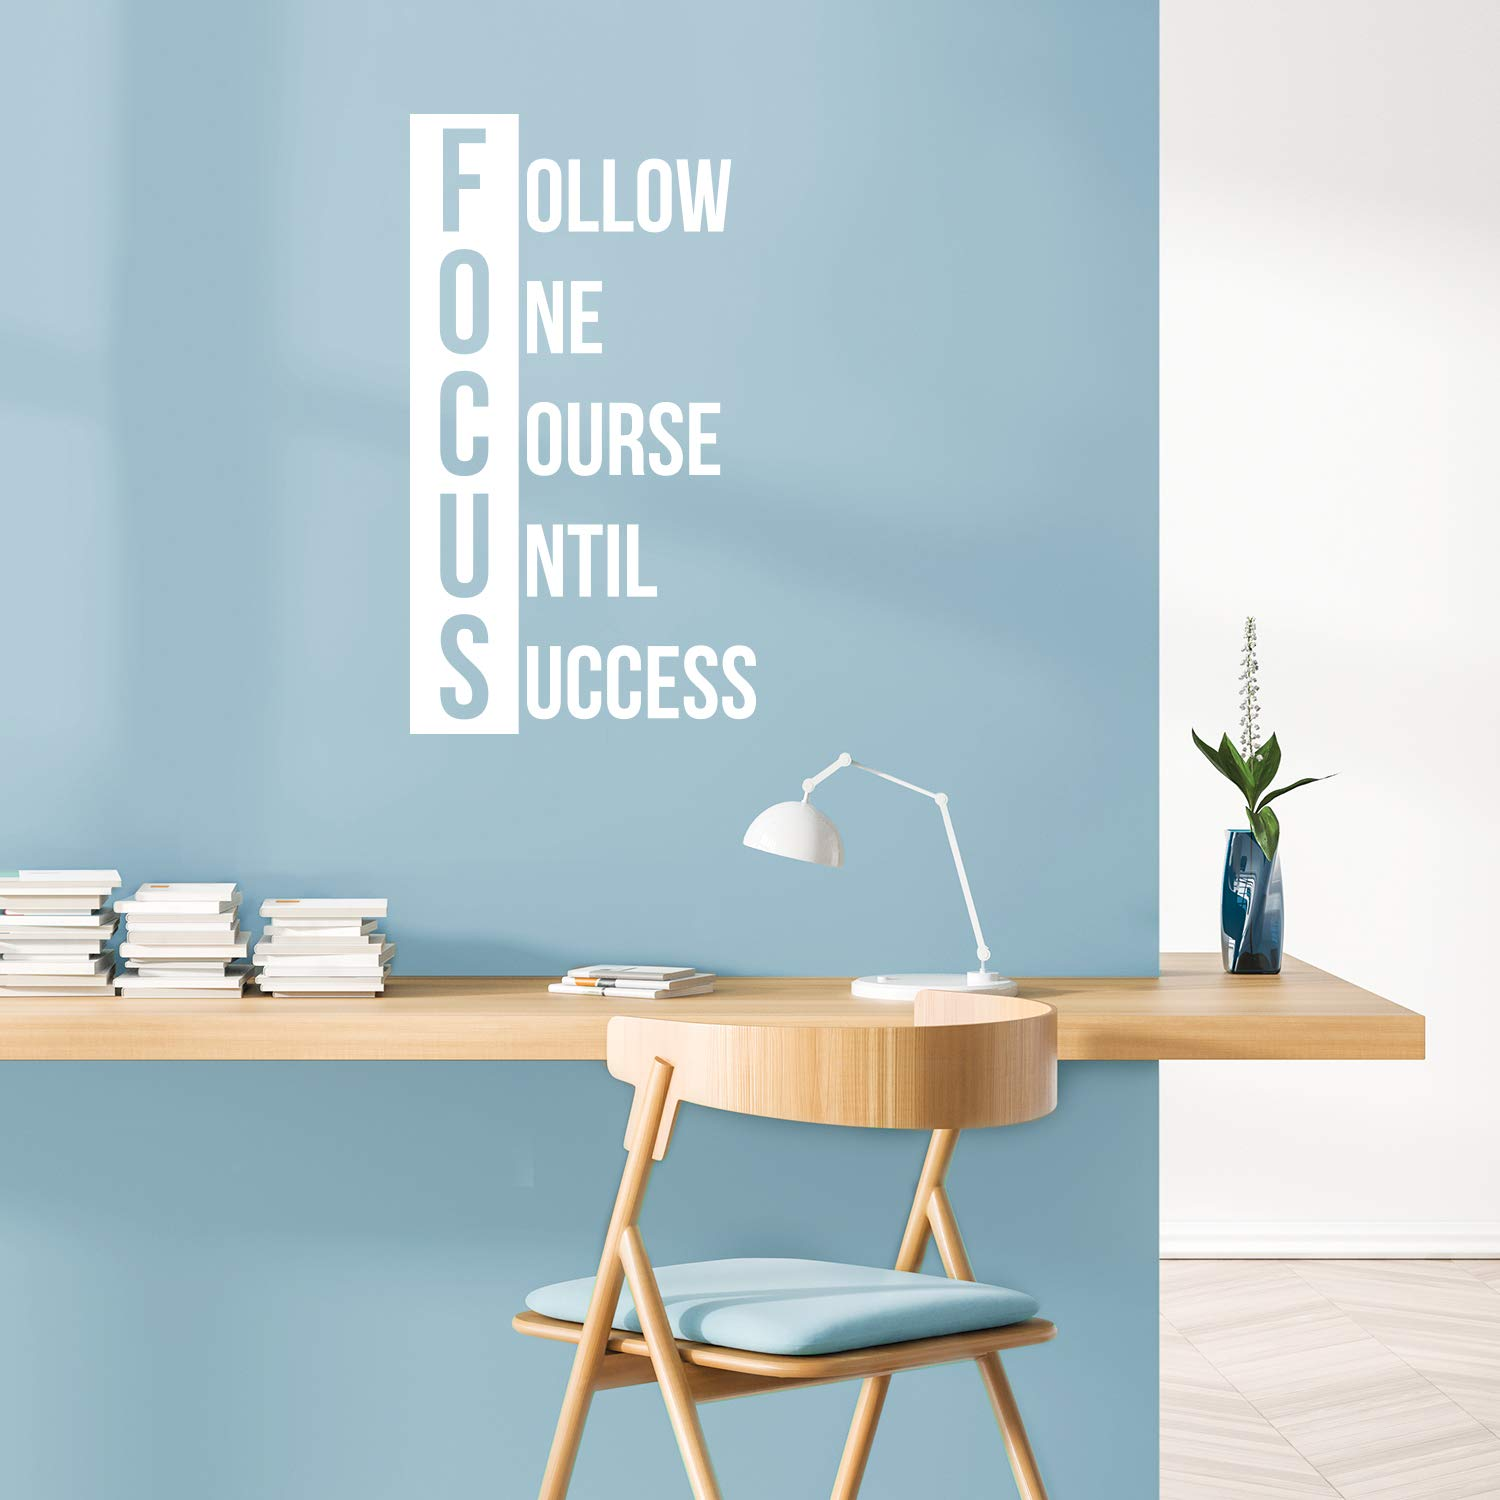 """Vinyl Wall Art Decal - Focus Follow One Course Until Success - 30"""" x 17"""" - Trendy Motivational Quote Sticker for Home Gym Bedroom Exercise Room Classroom Work Office Decor (White)"""